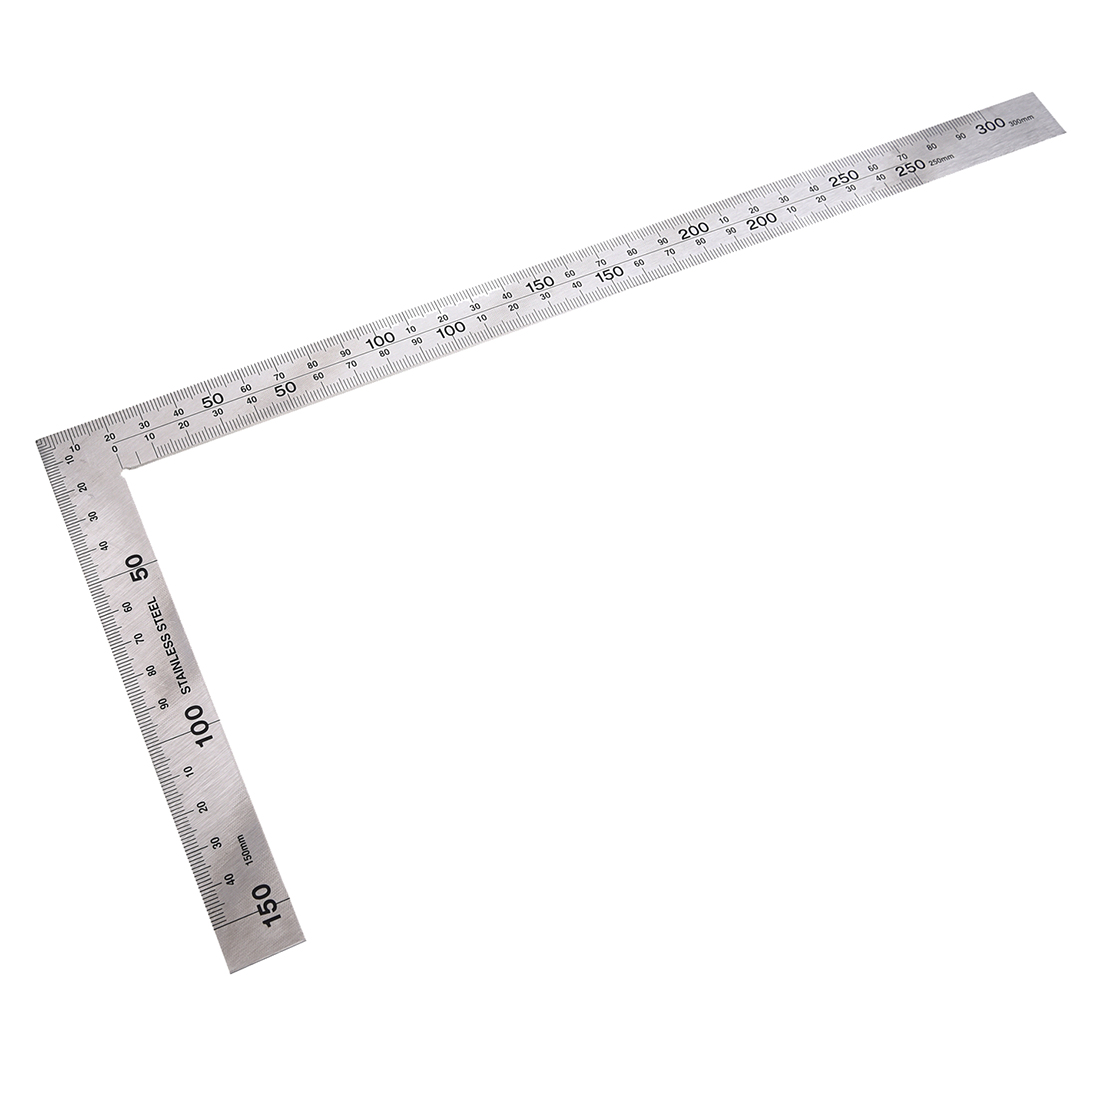 FYSS-Stainless Steel 150 X 300mm 90 Degree Angle Metric Try Mitre Square Ruler